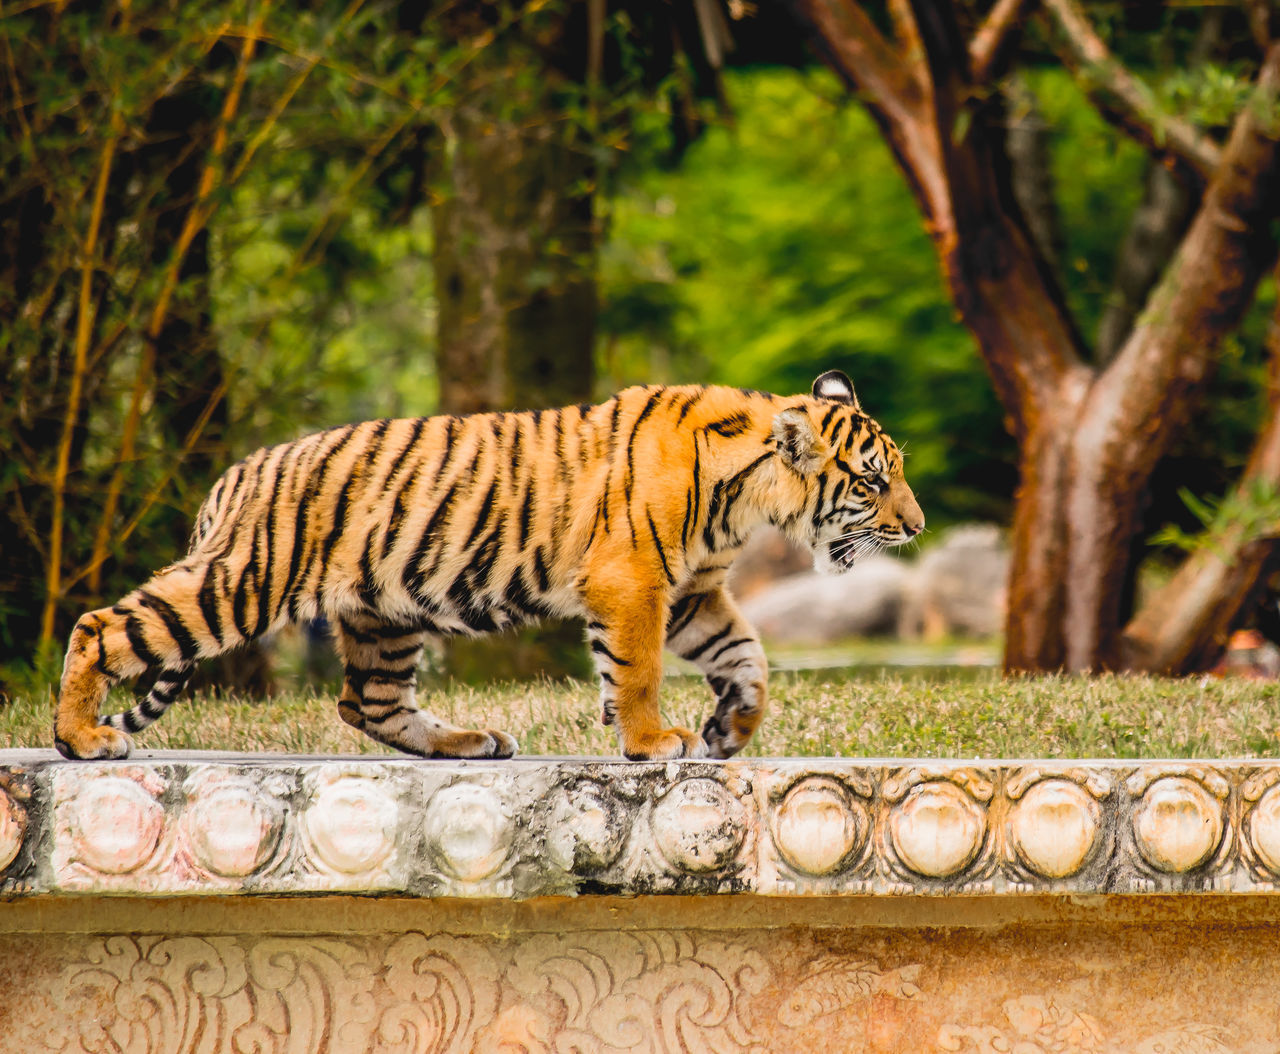 Amazing Animal Animals Beauty In Nature Captivity Cat Day Nature Nature Photography Nature_collection No People Orange Color Predator Sunshine Tiger Wild Wildlife Wildlife & Nature Wildlife Photography Zoo